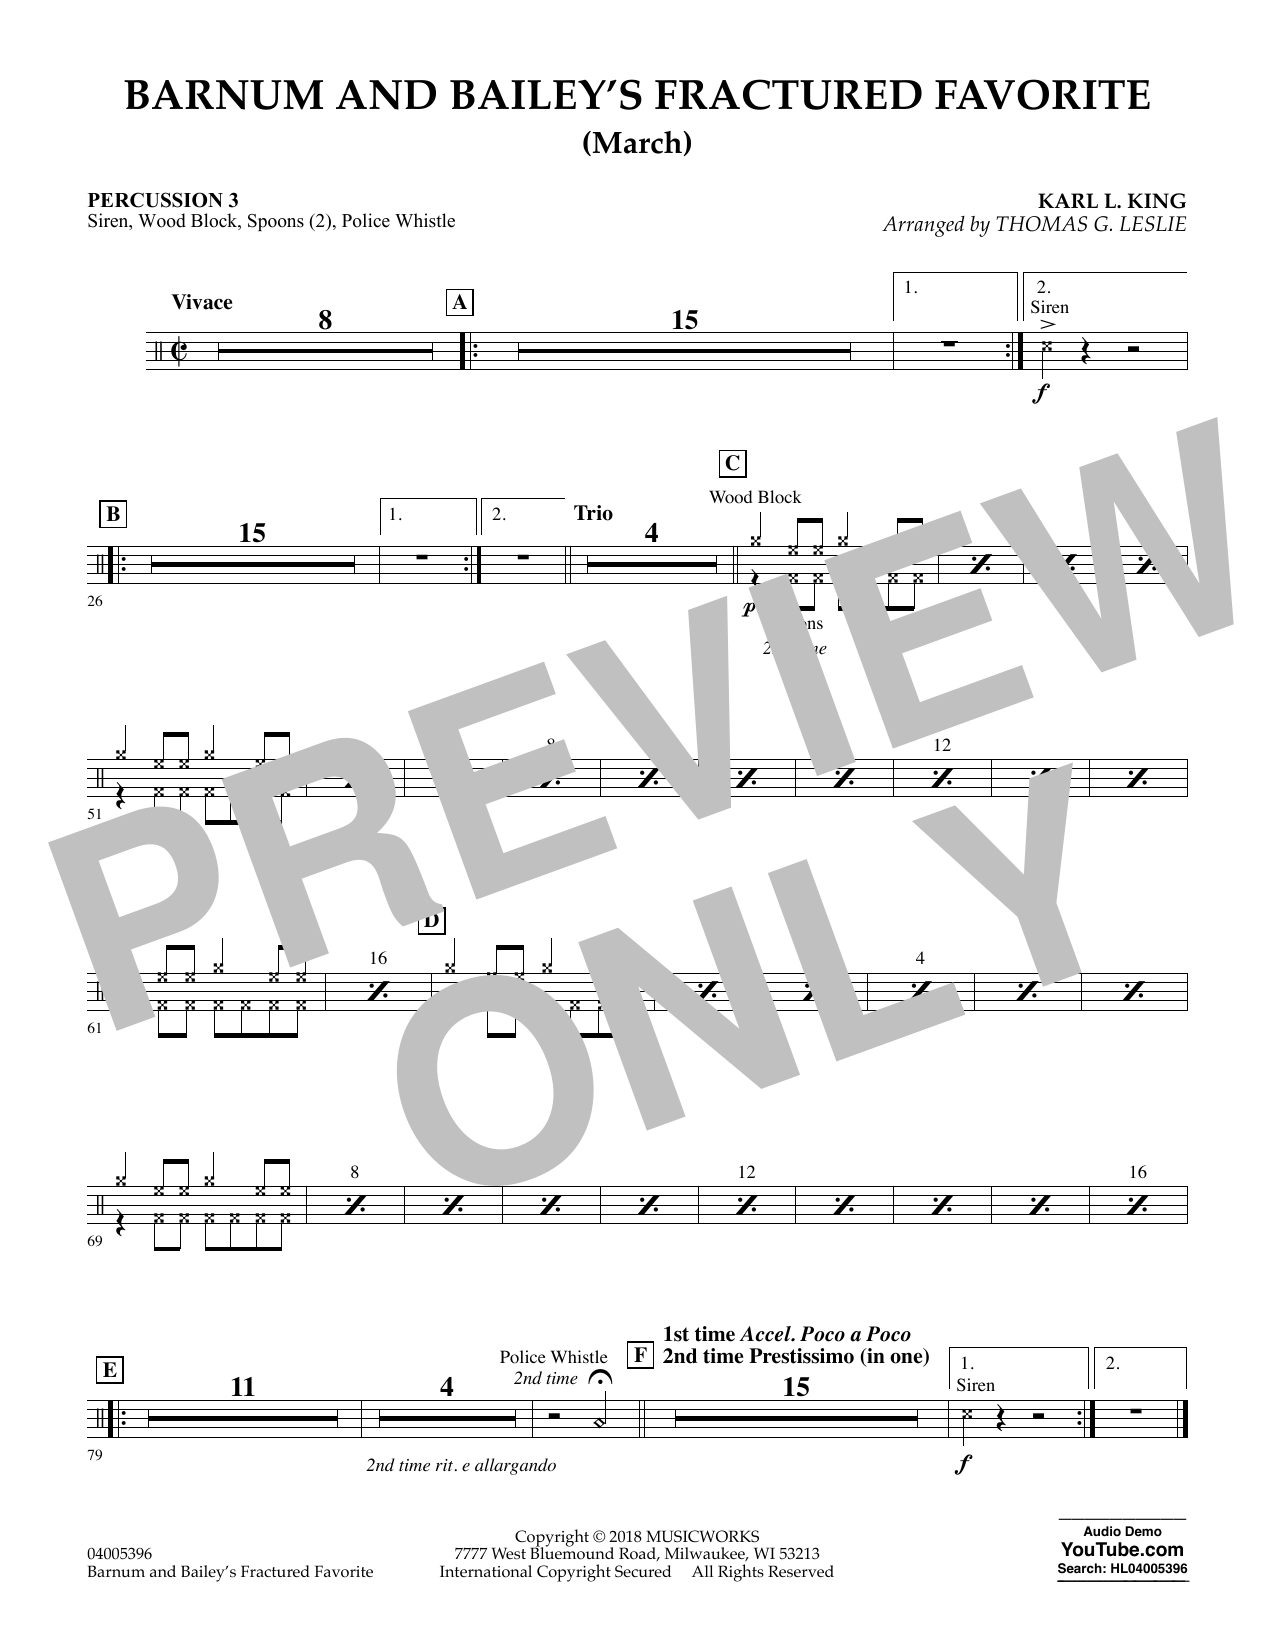 Barnum and Bailey's Fractured Favorite - Percussion 3 (Concert Band)